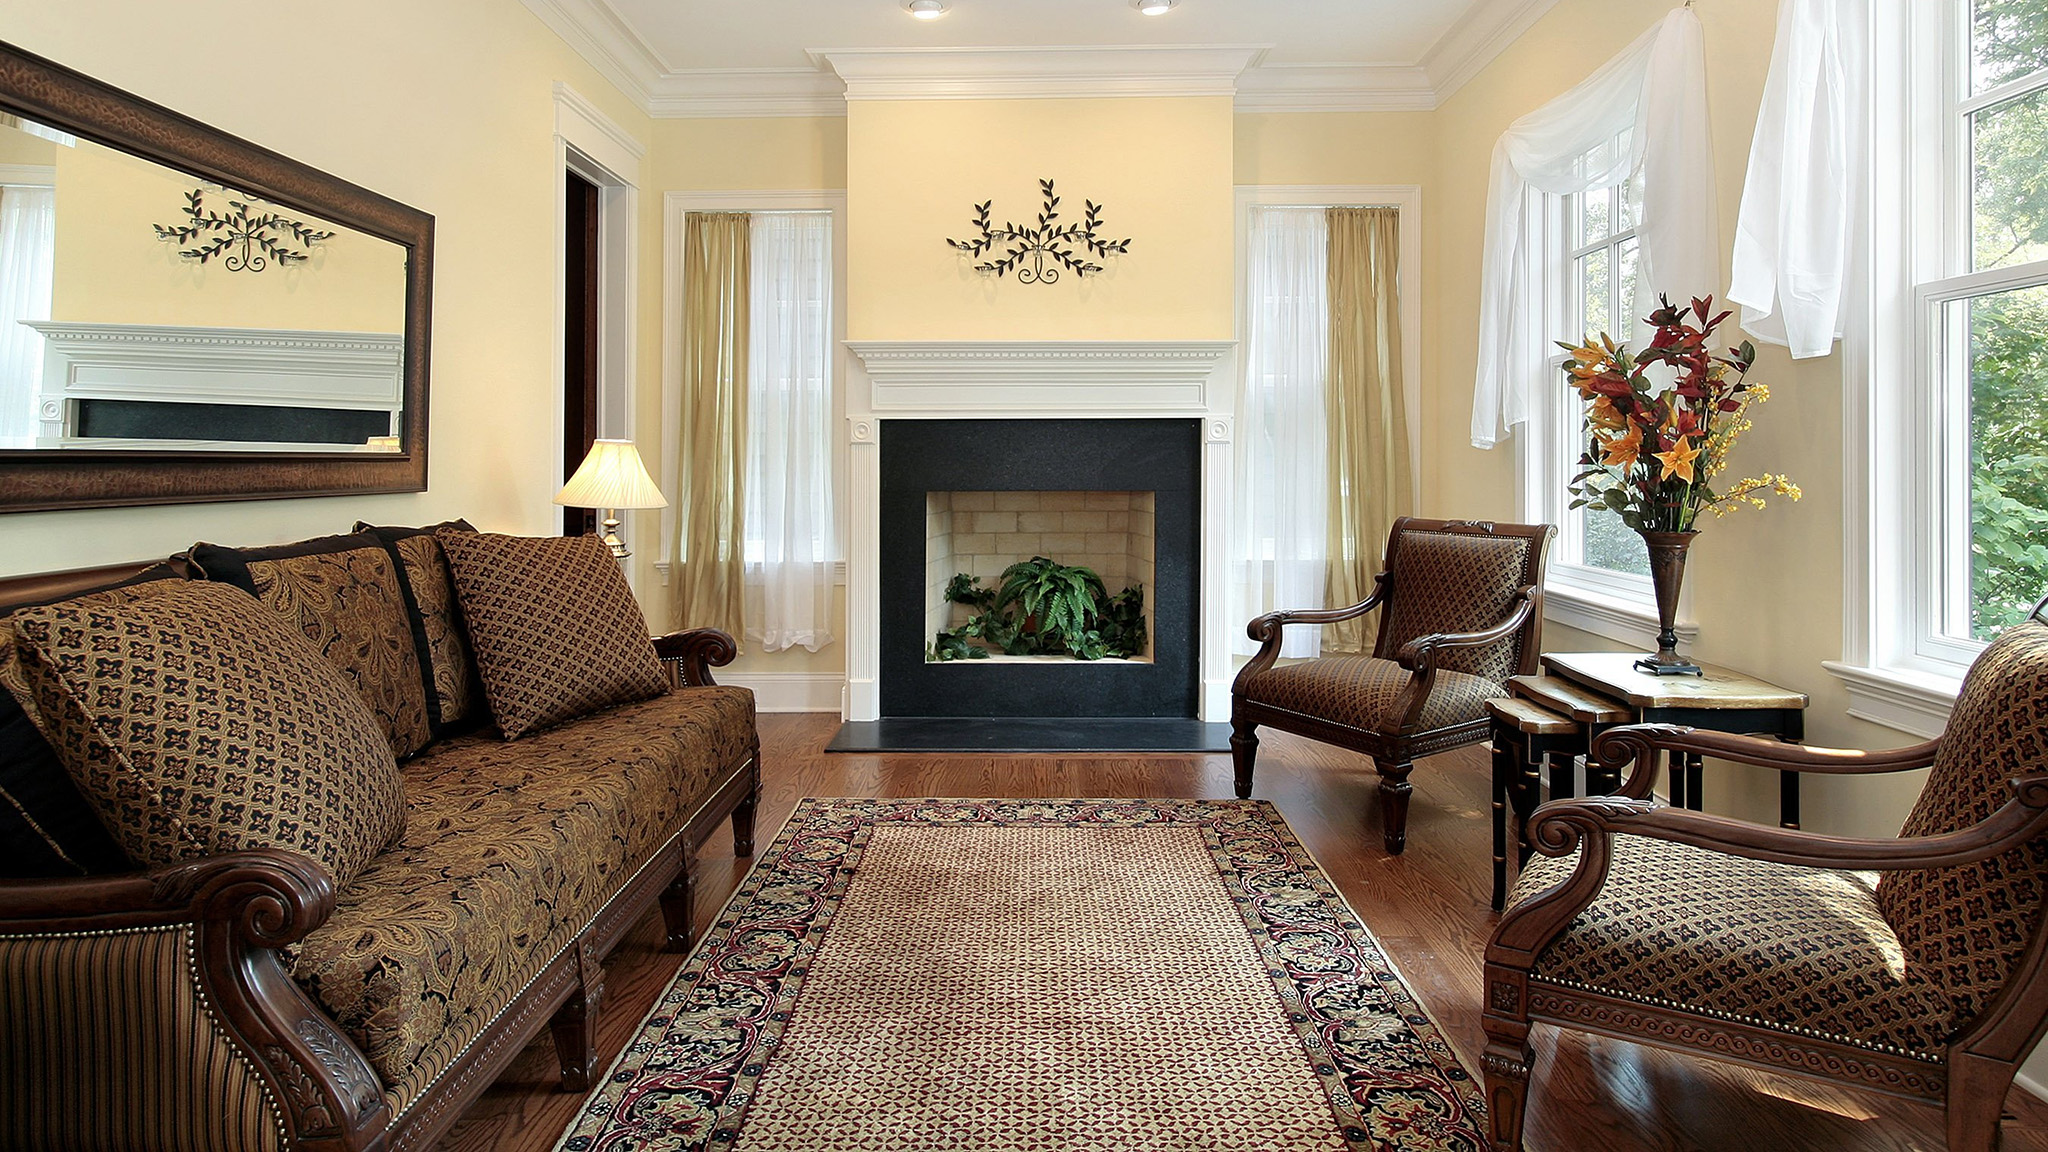 Image 2 - fireplace-.jpg